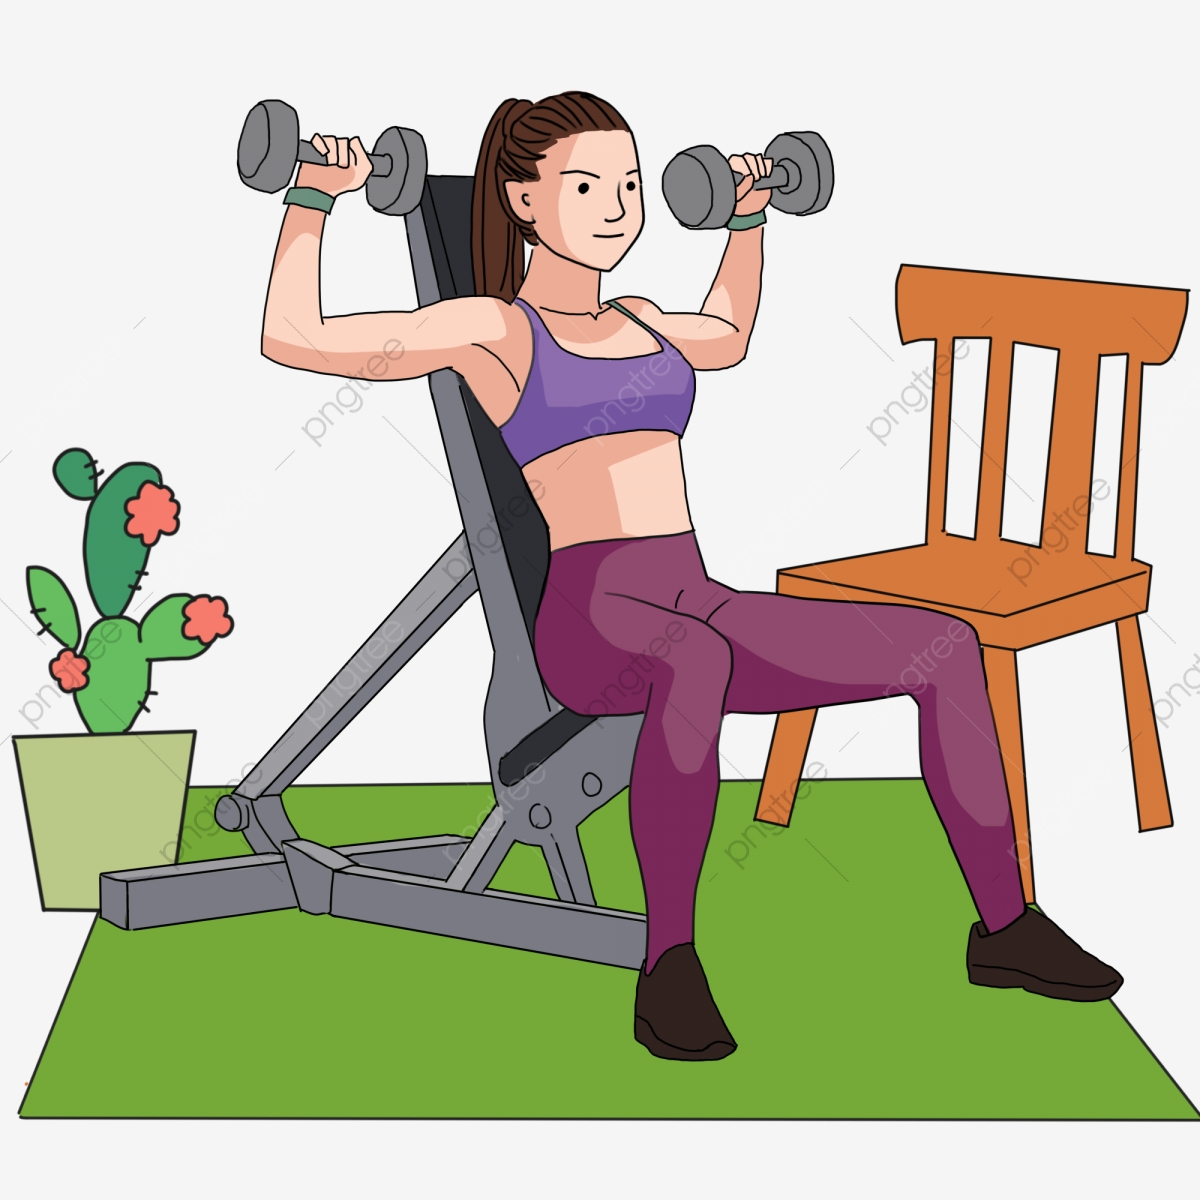 Gym Weightlifting Fitness Body Build Muscle Dumbbell Chair Cactus Png Transparent Clipart Image And Psd File For Free Download